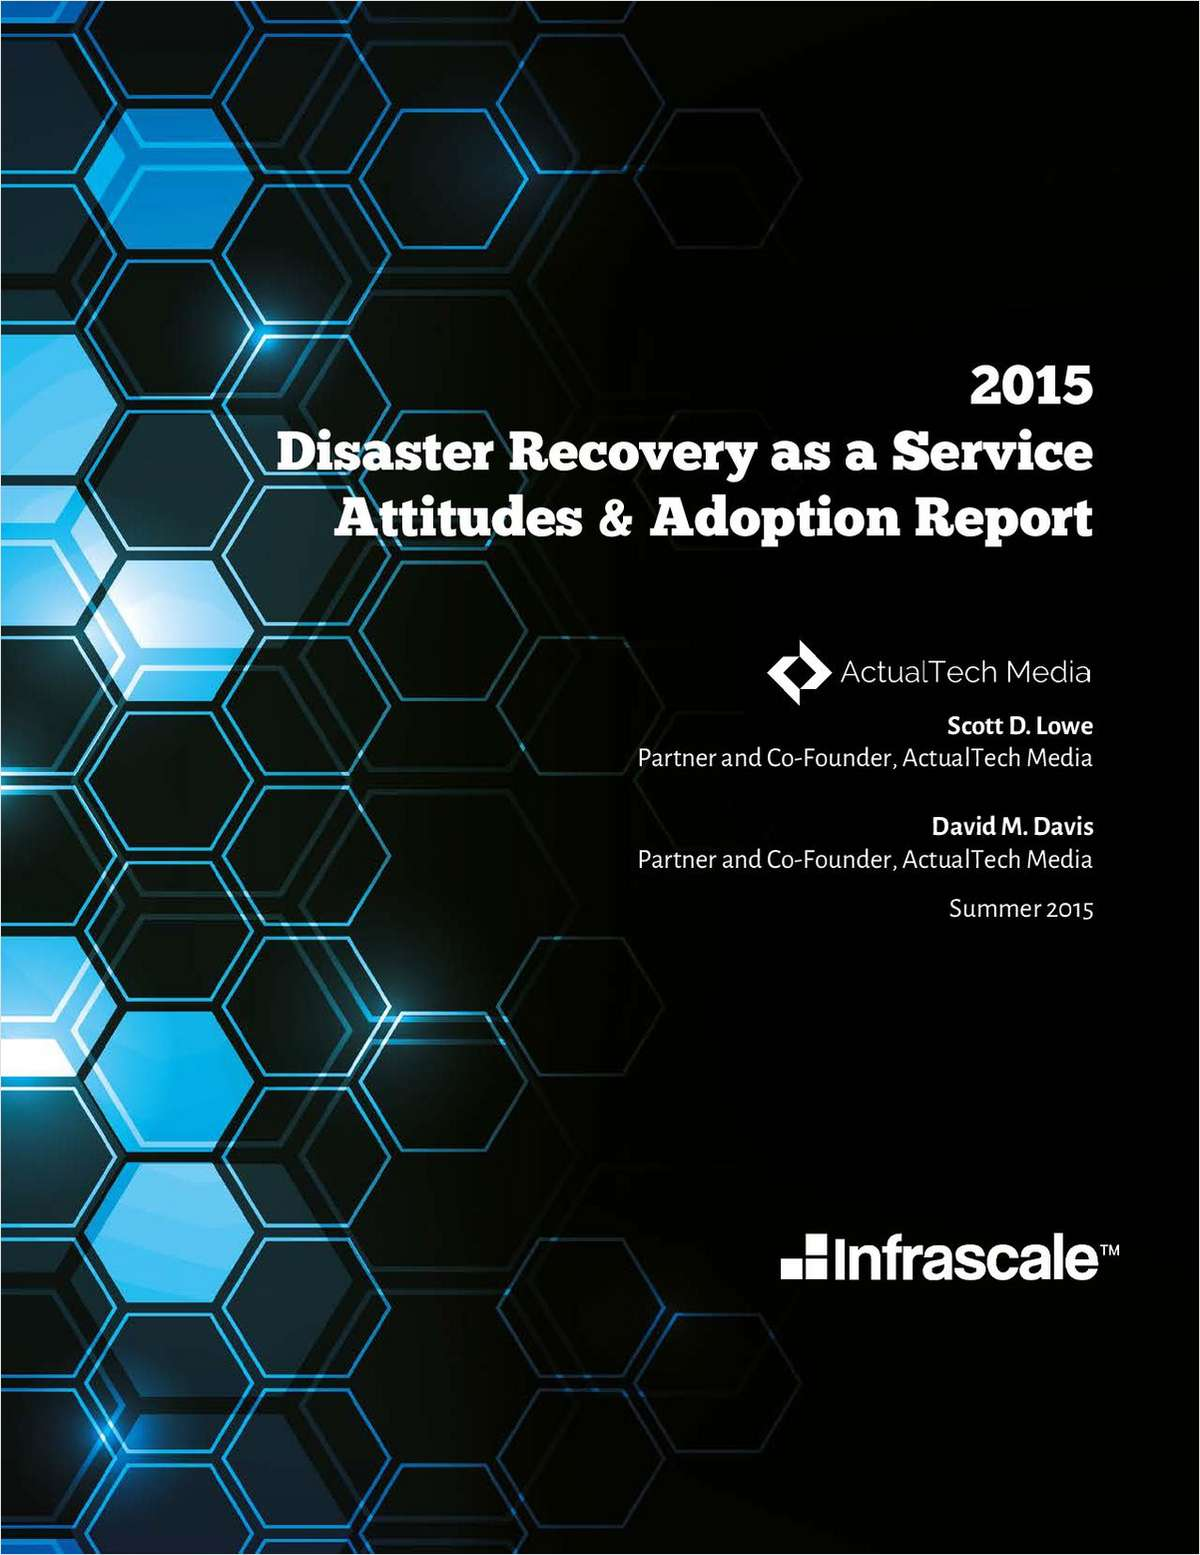 Disaster Recovery as a Service: Attitudes & Adoption Report